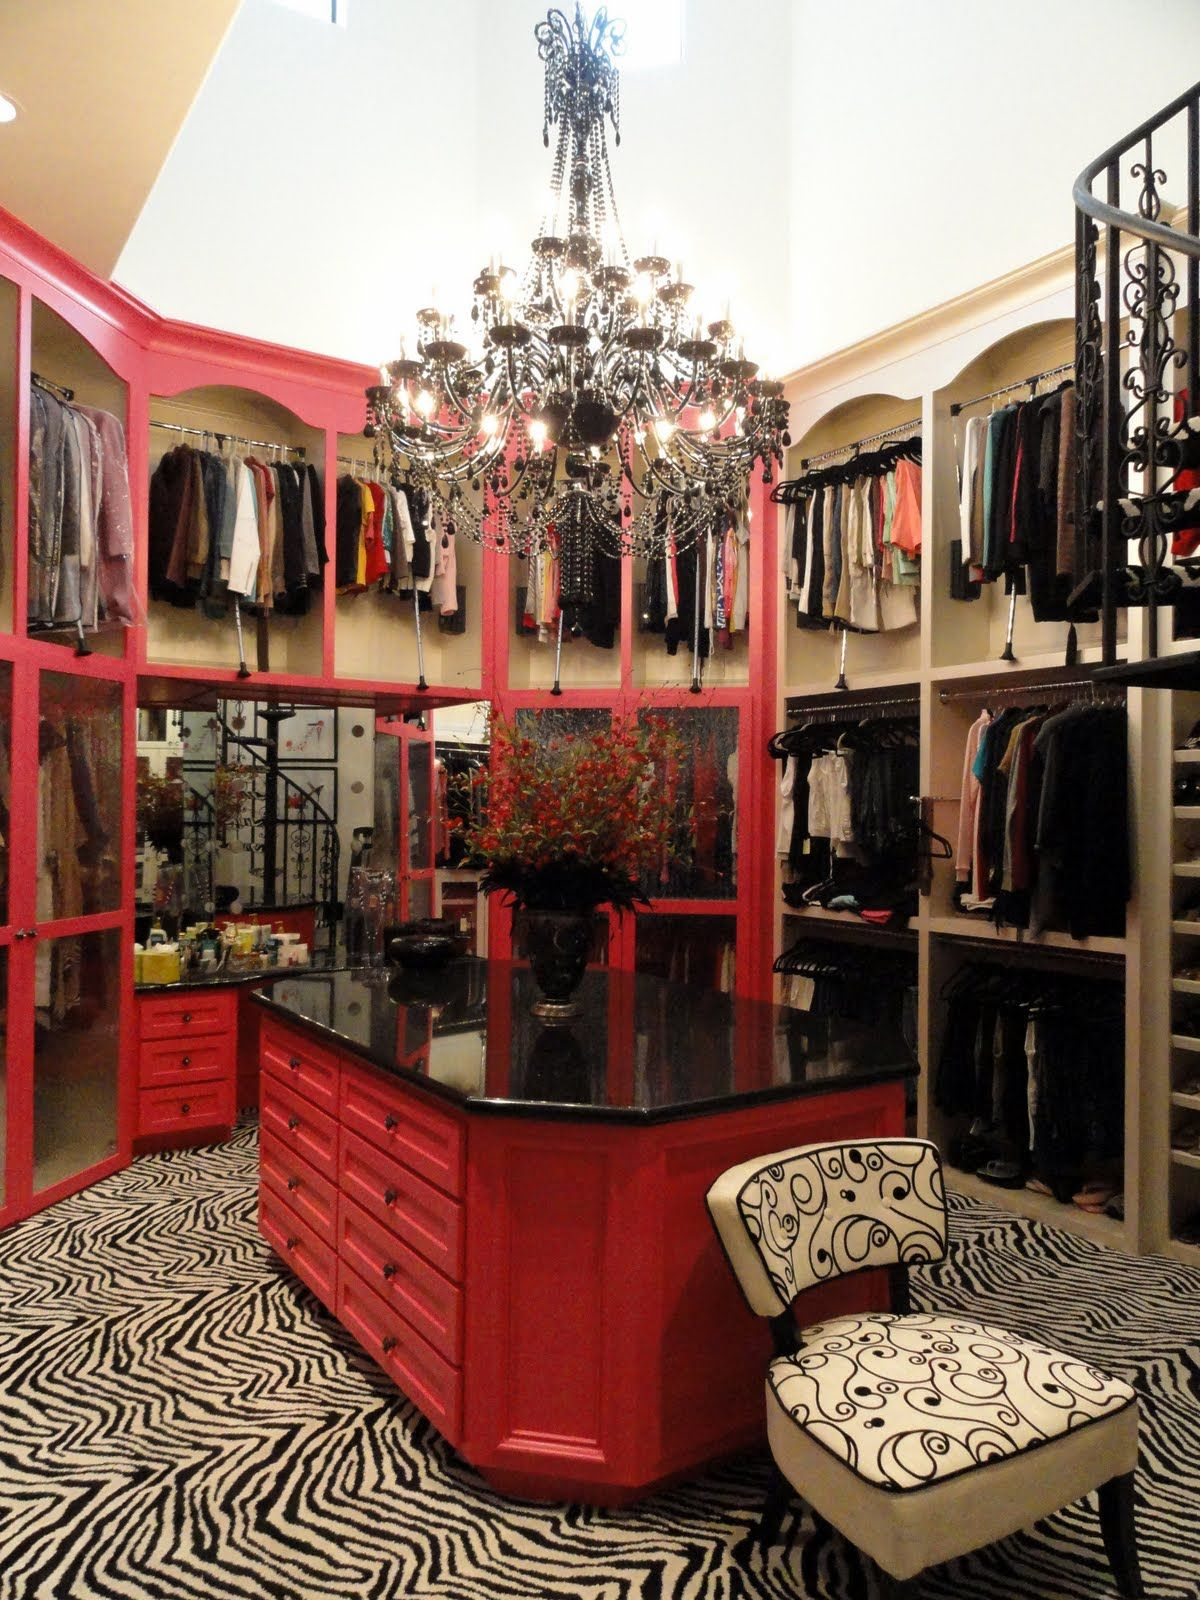 One of the most magnificent closets I've ever seen. This